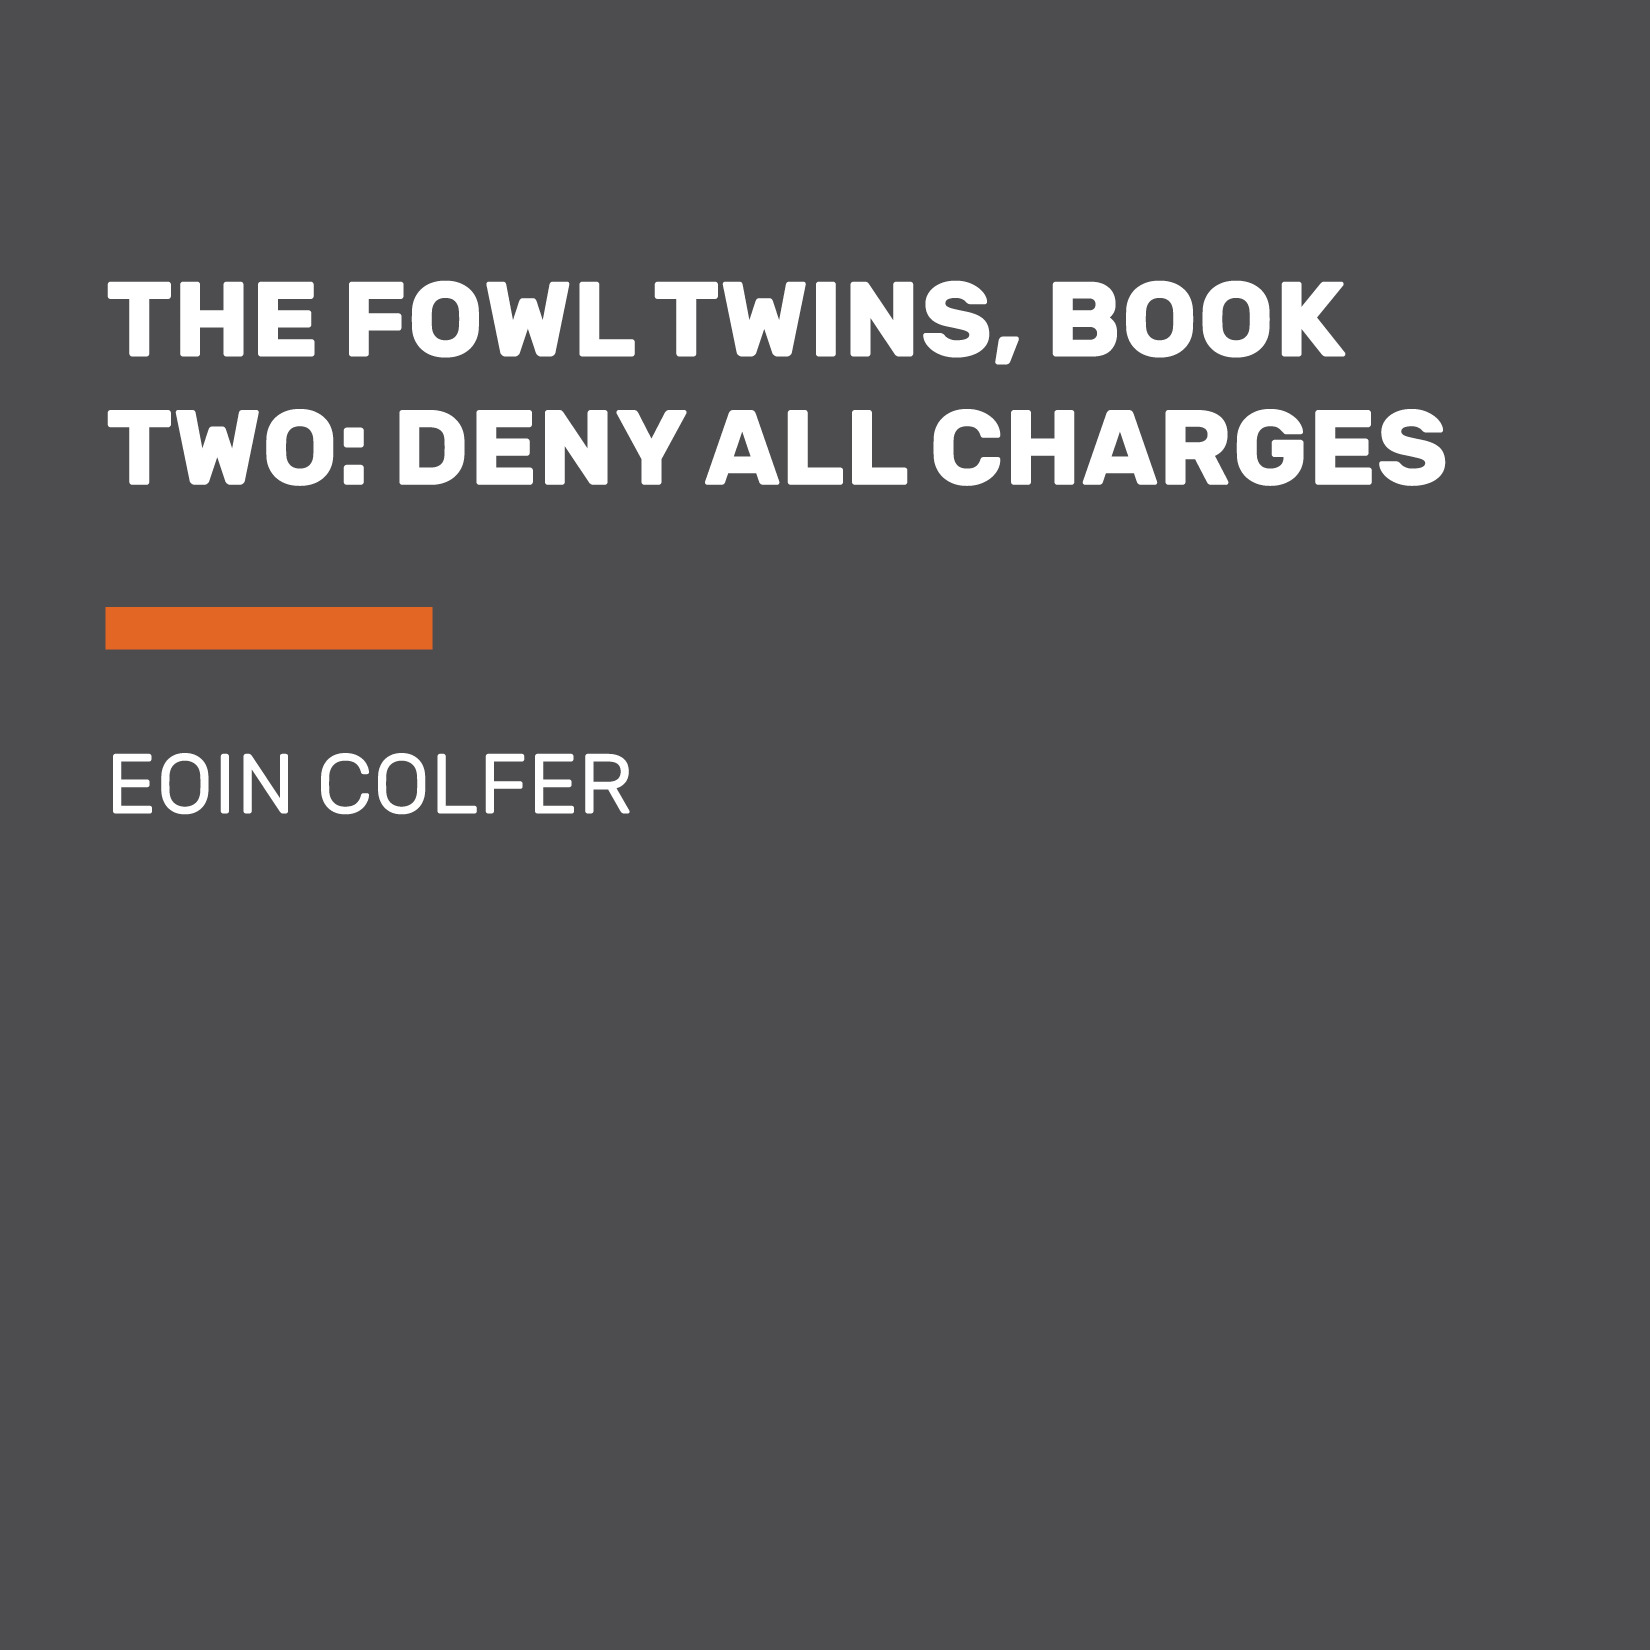 The Fowl Twins, Book Two: Deny All Charges